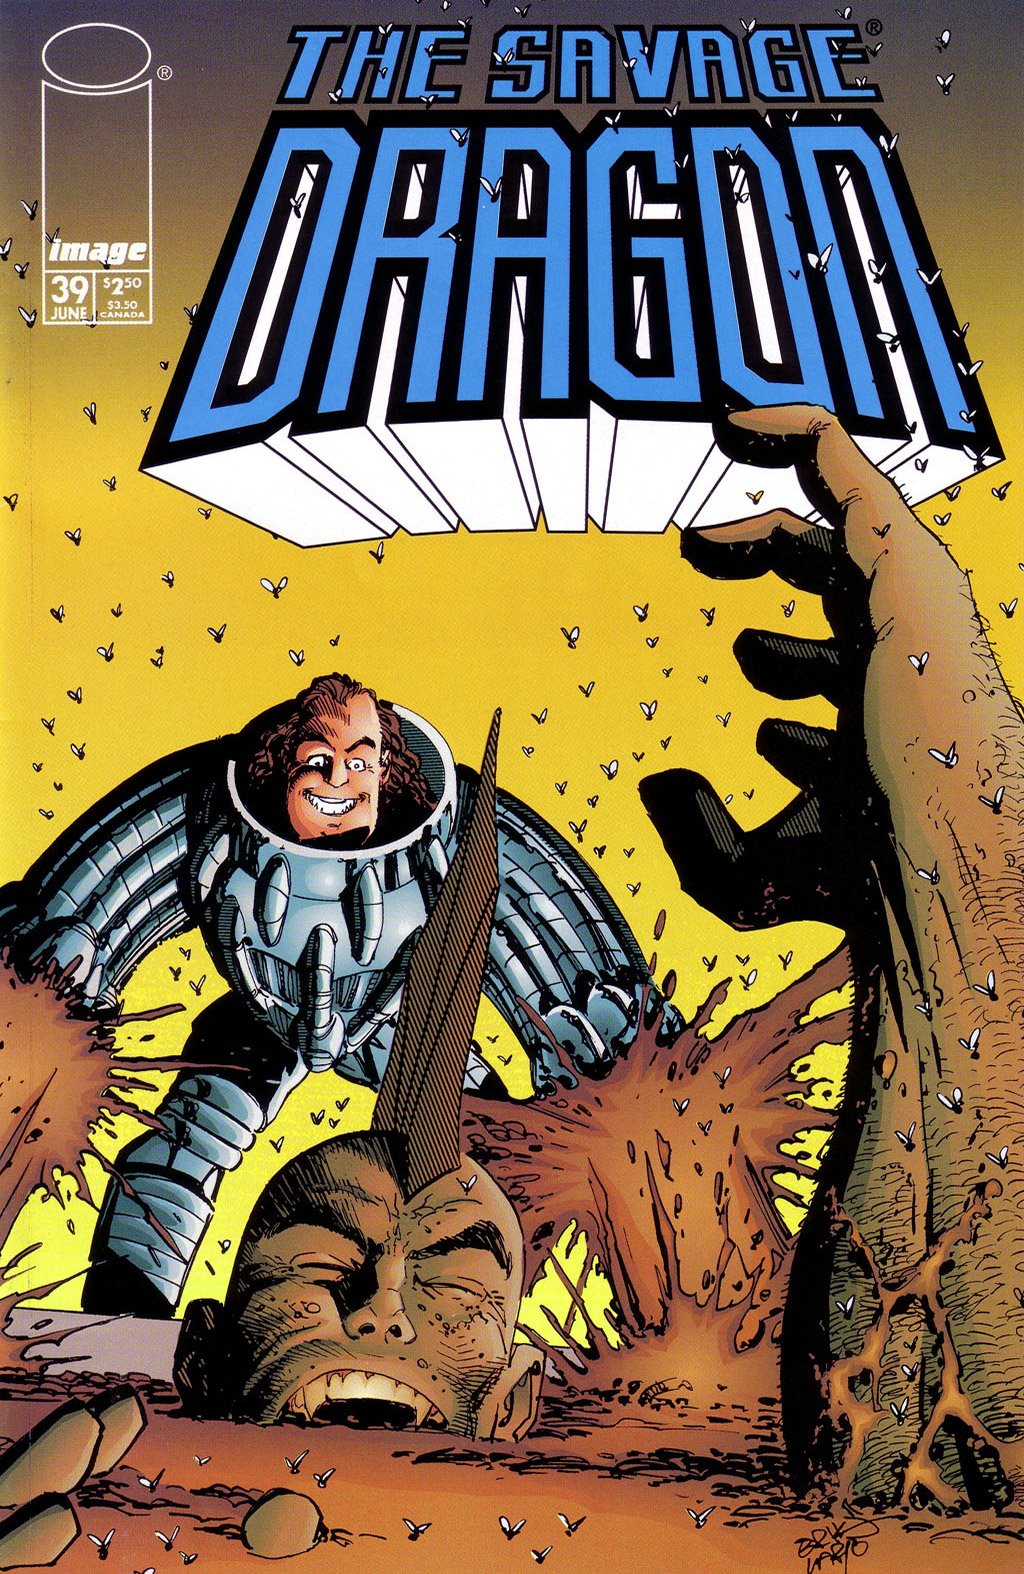 Cover Savage Dragon Vol.2 #39